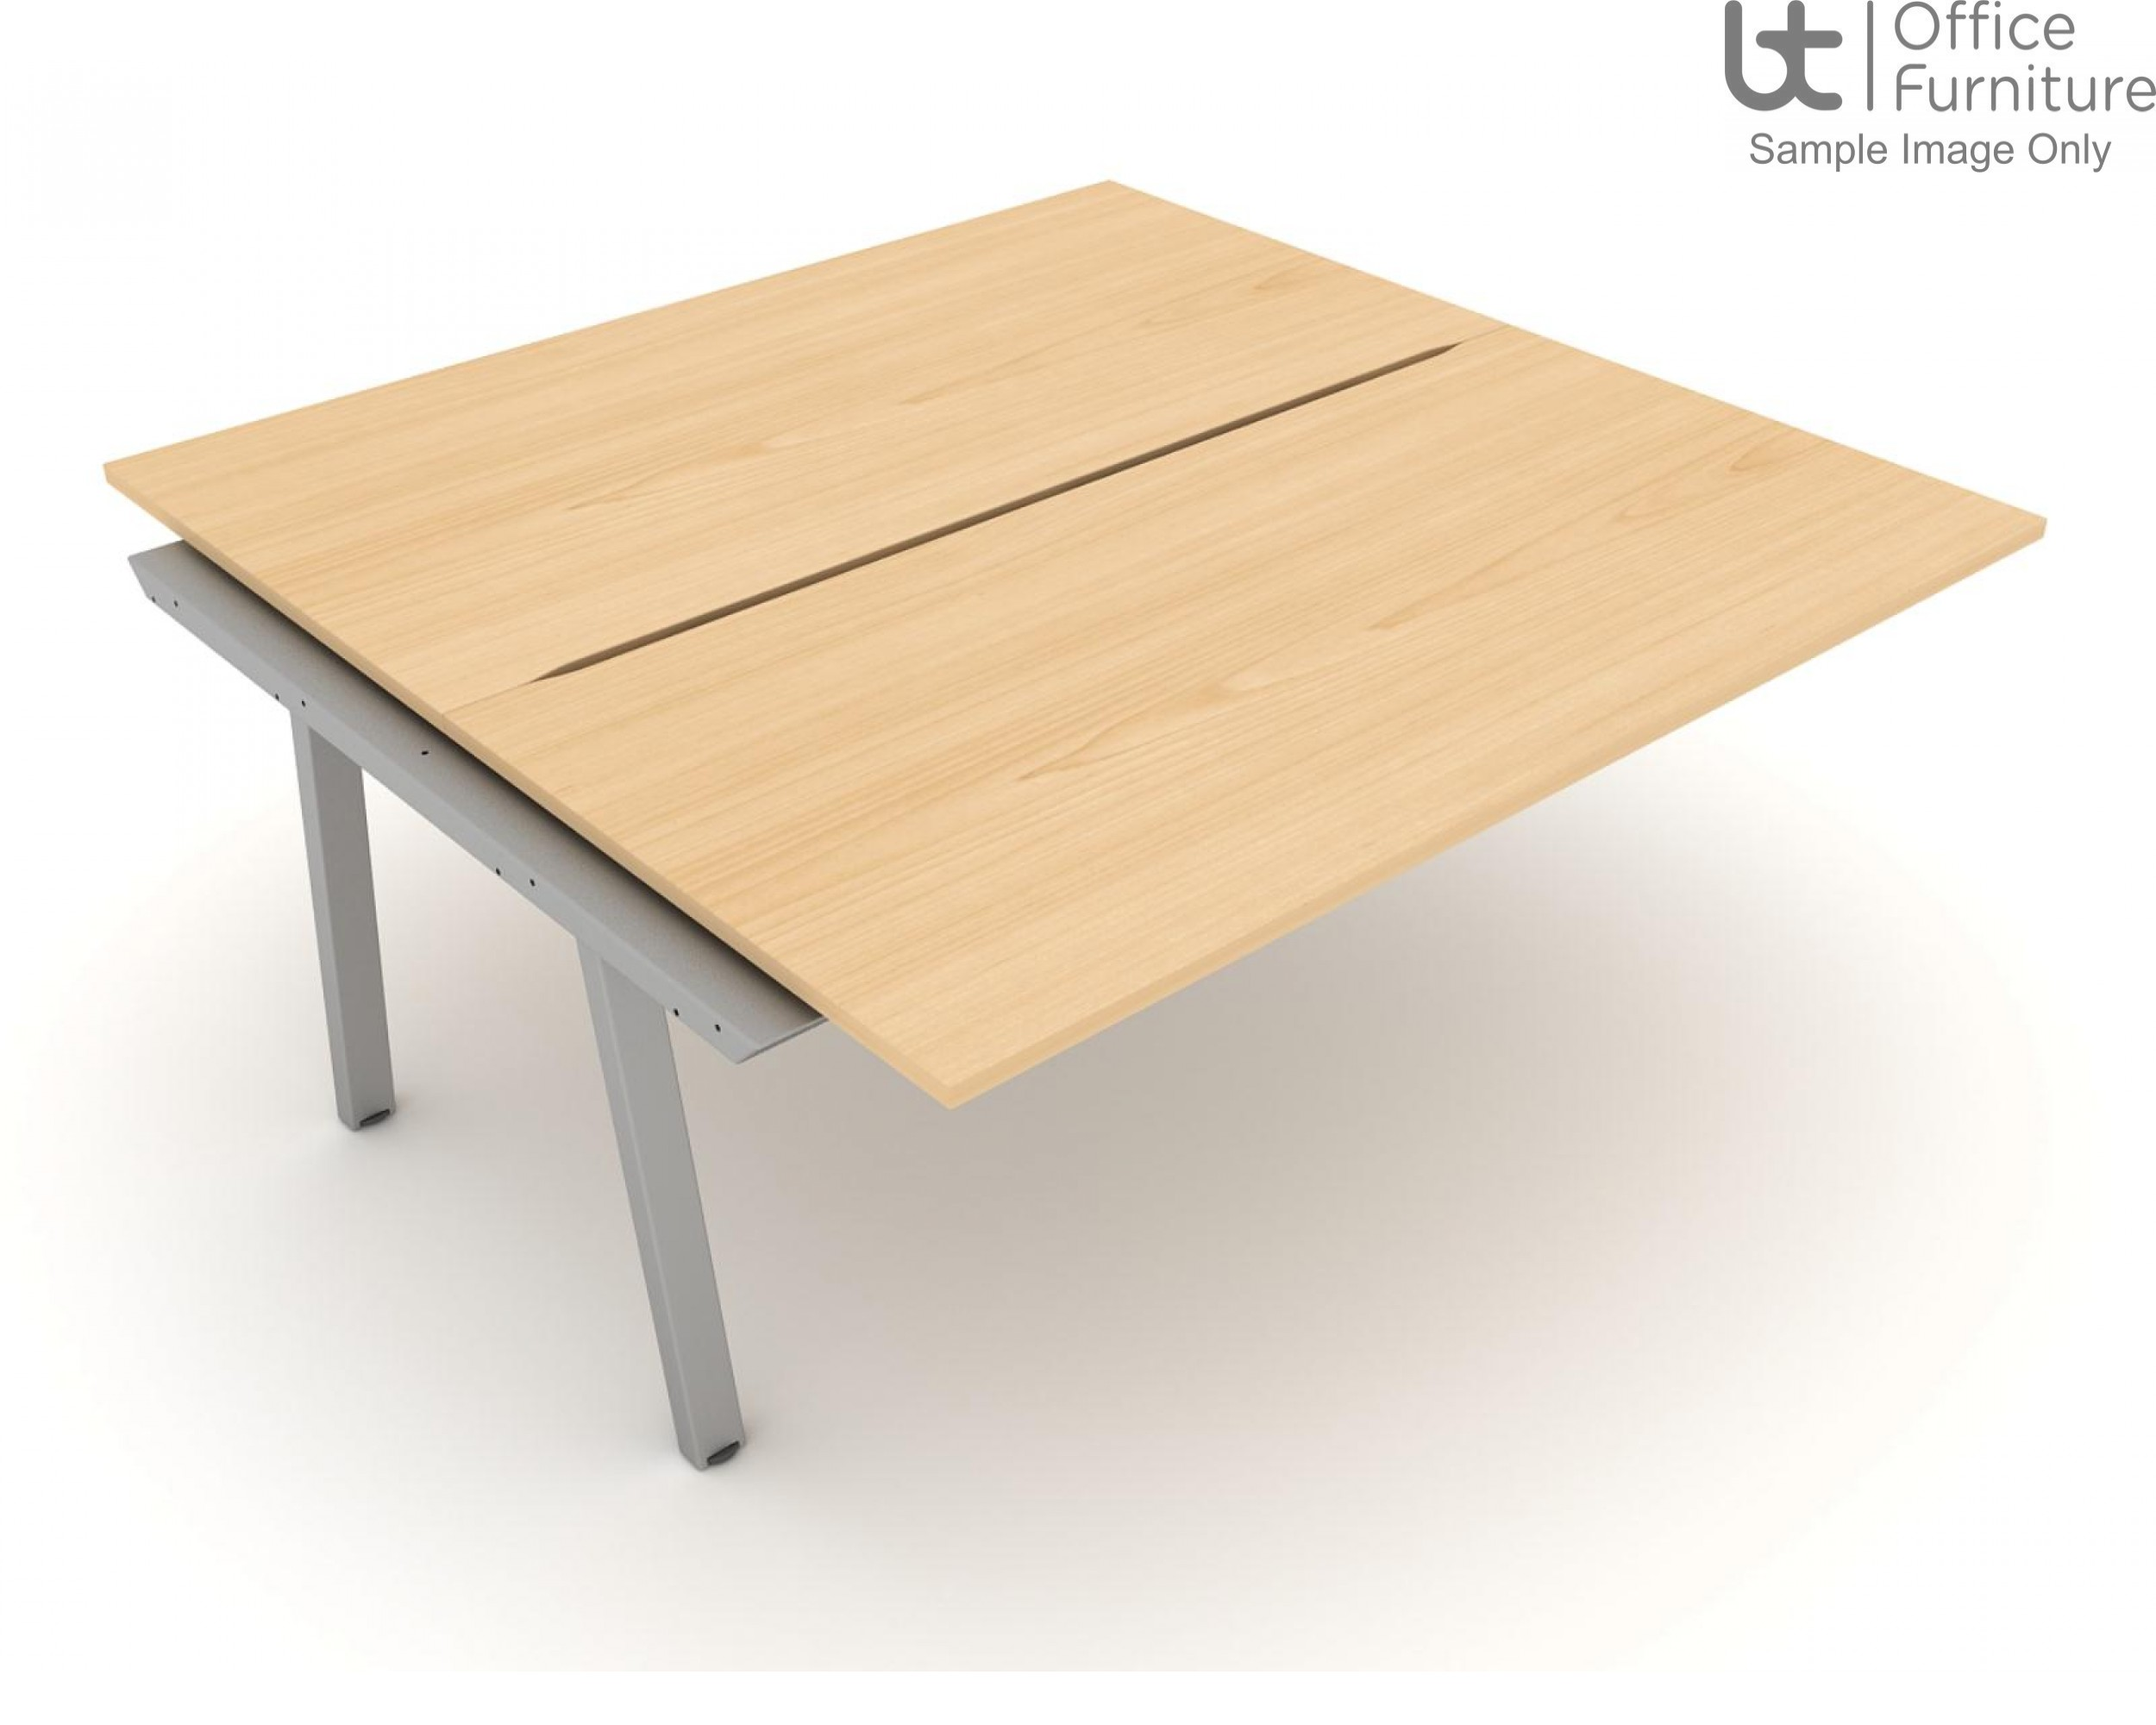 Elite Linnea 1200mm Double Bench with Shared Inset Leg